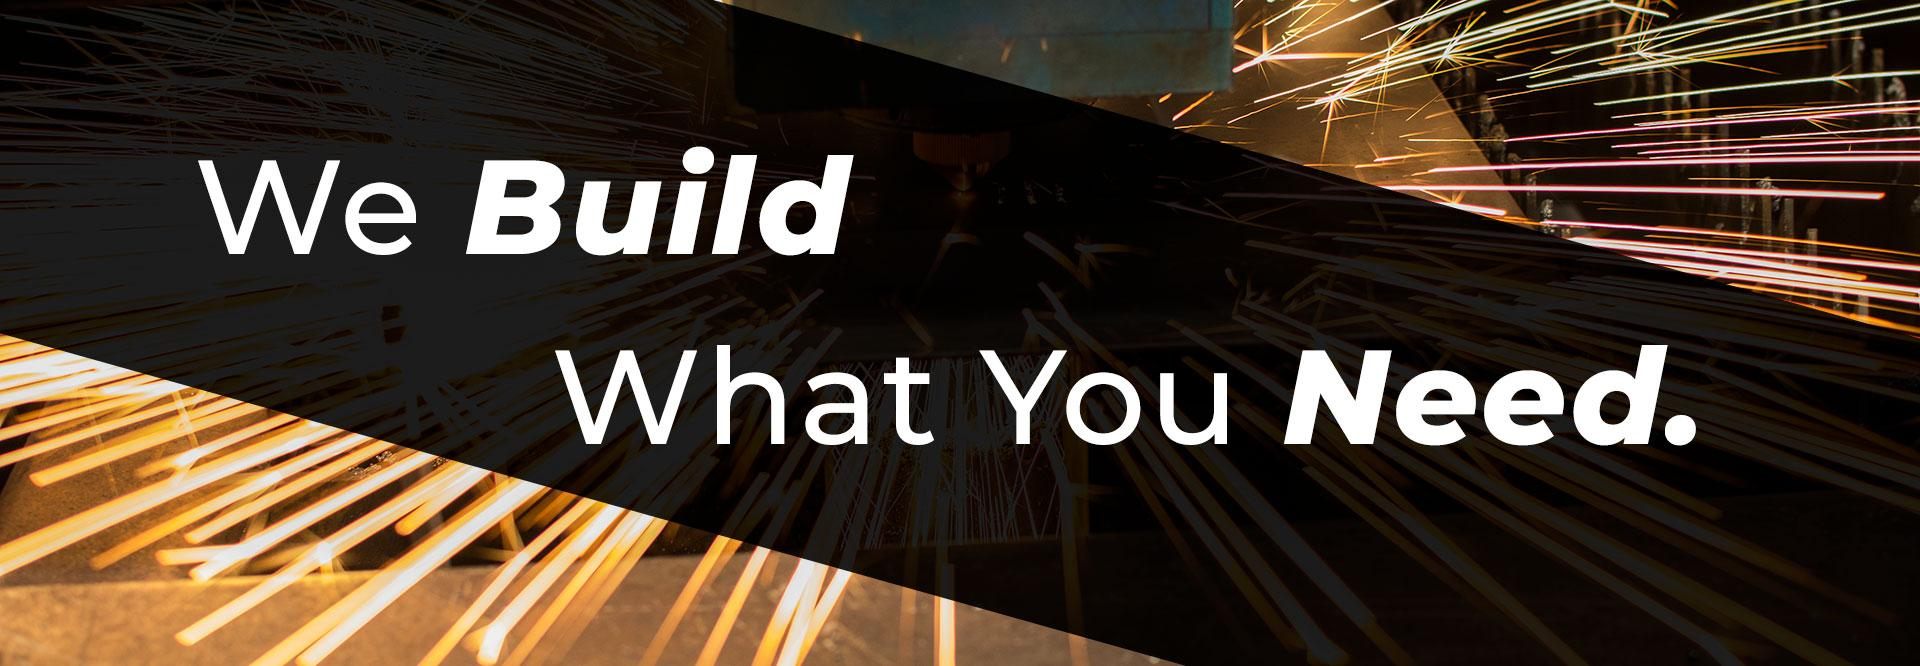 We build what you need